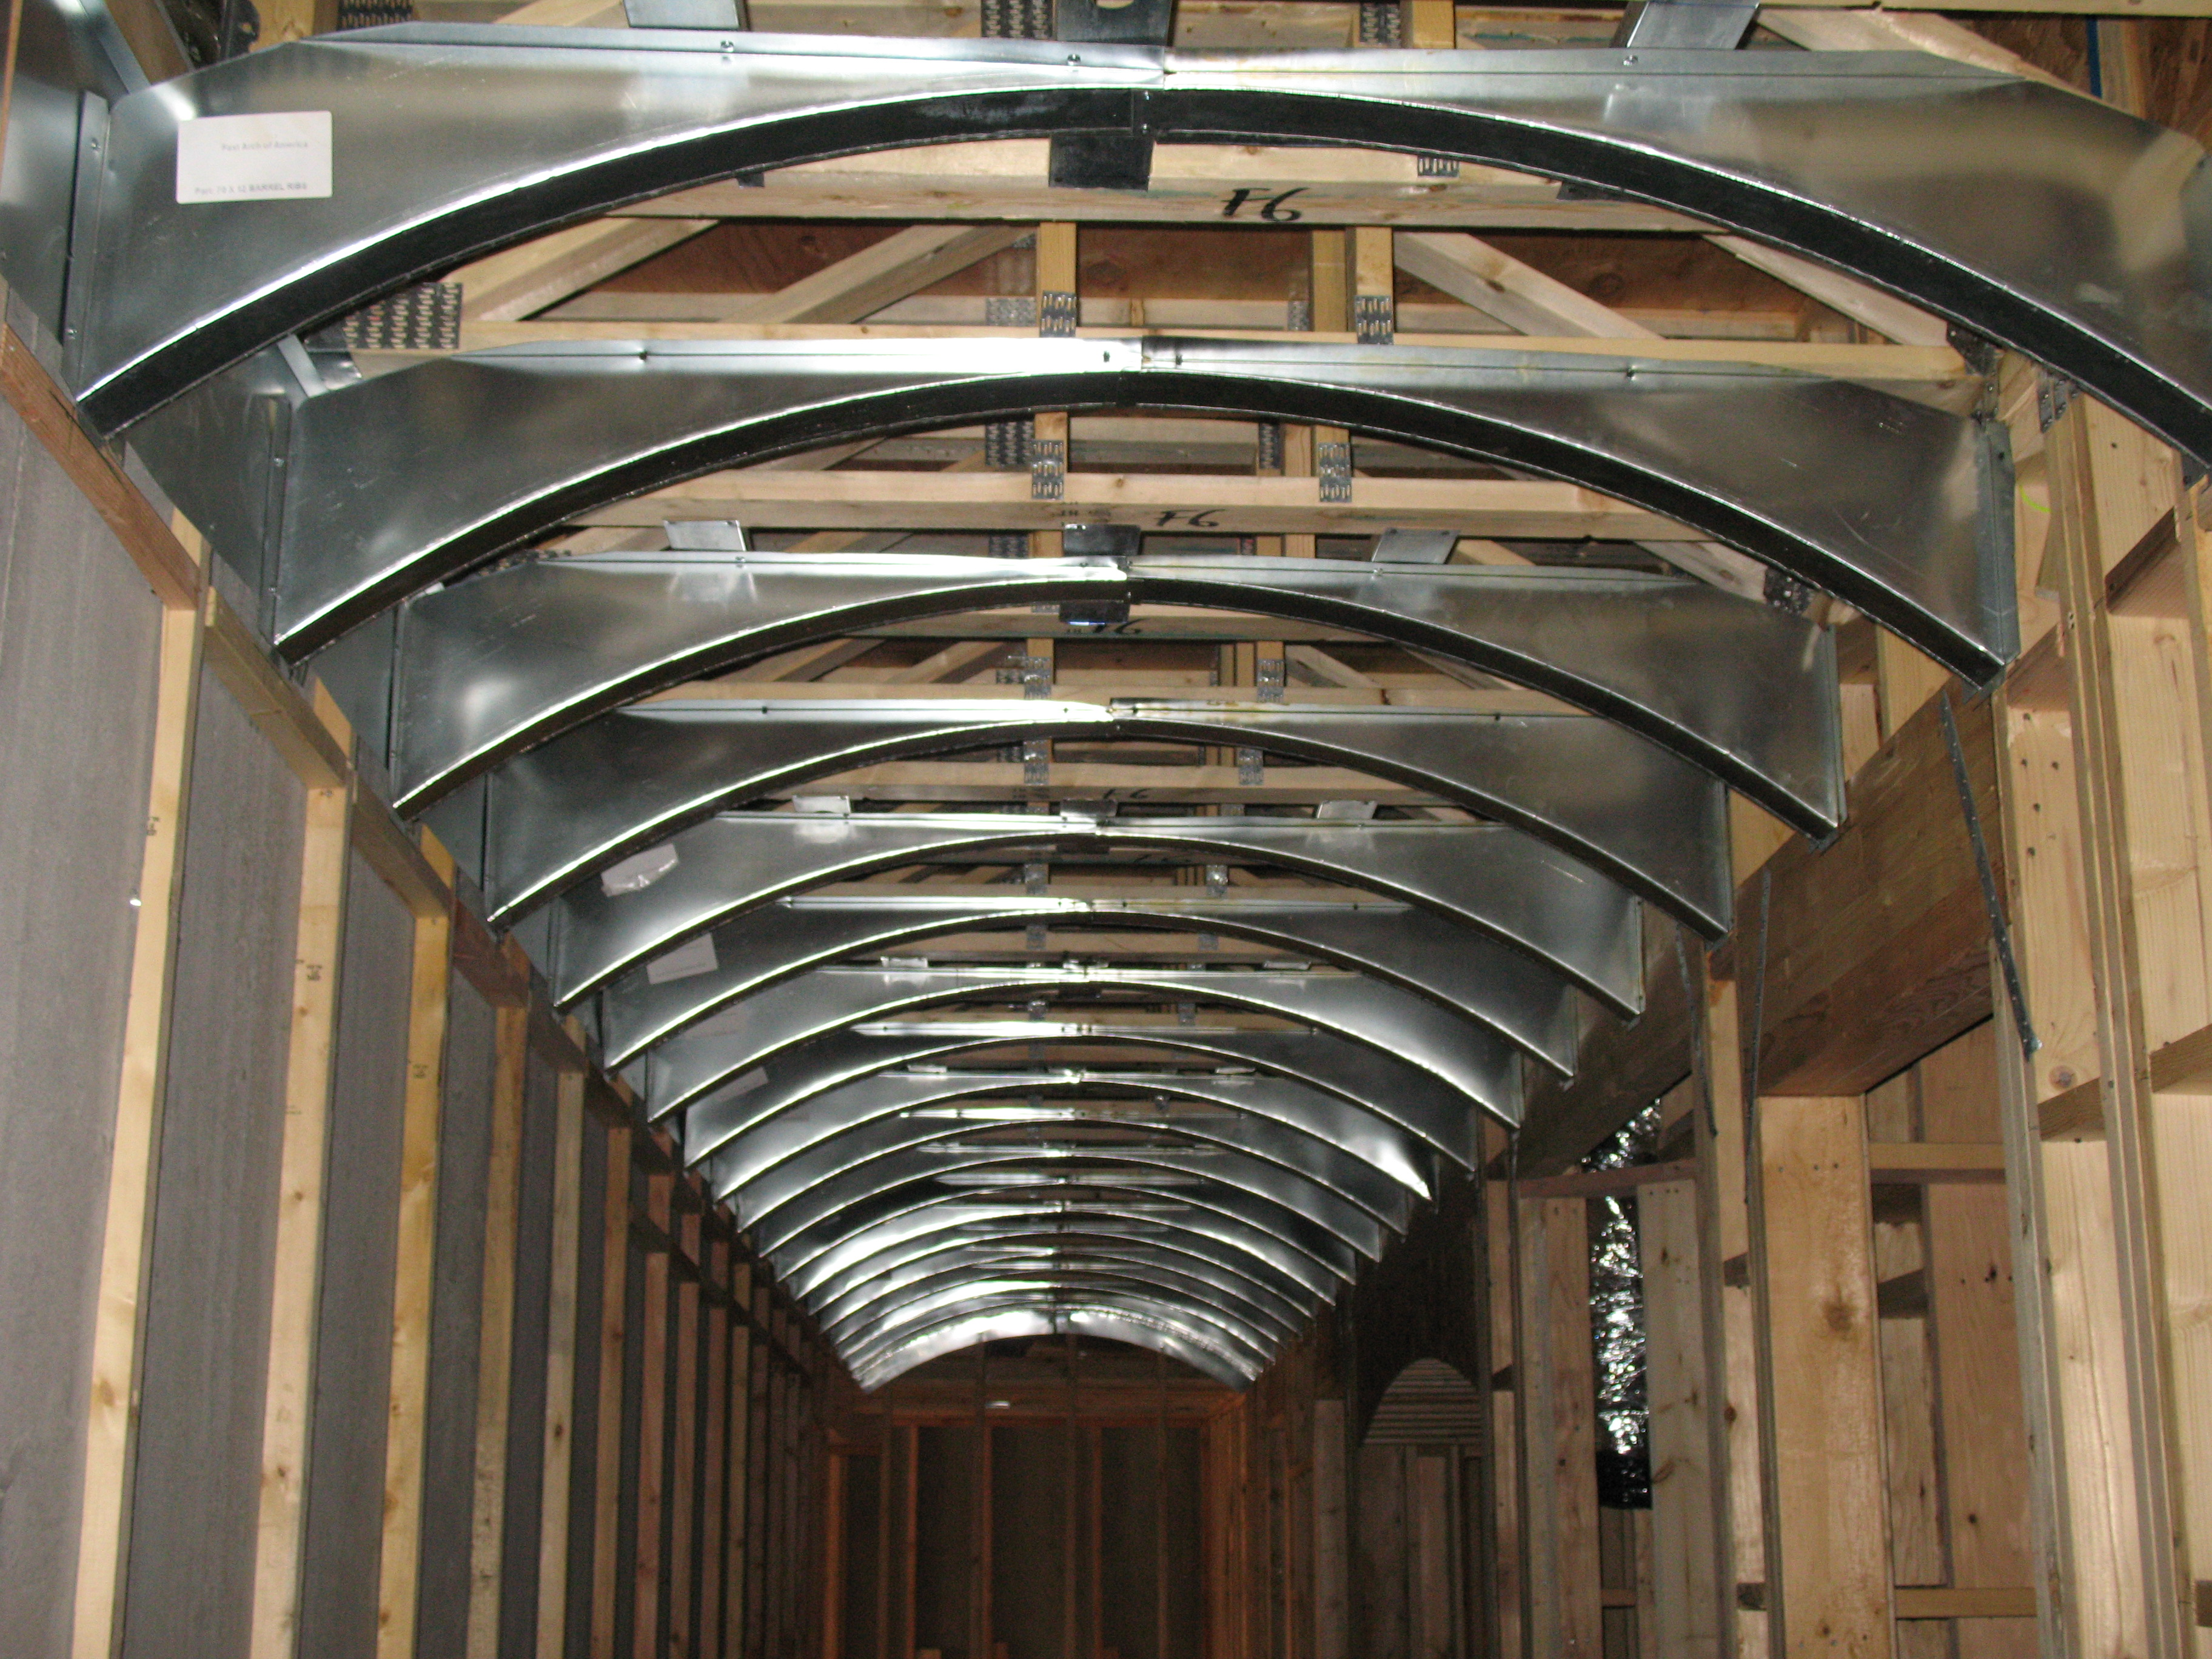 Pictures of Radiant Barrier installations - Energy Efficient Pictures of barrel ceilings